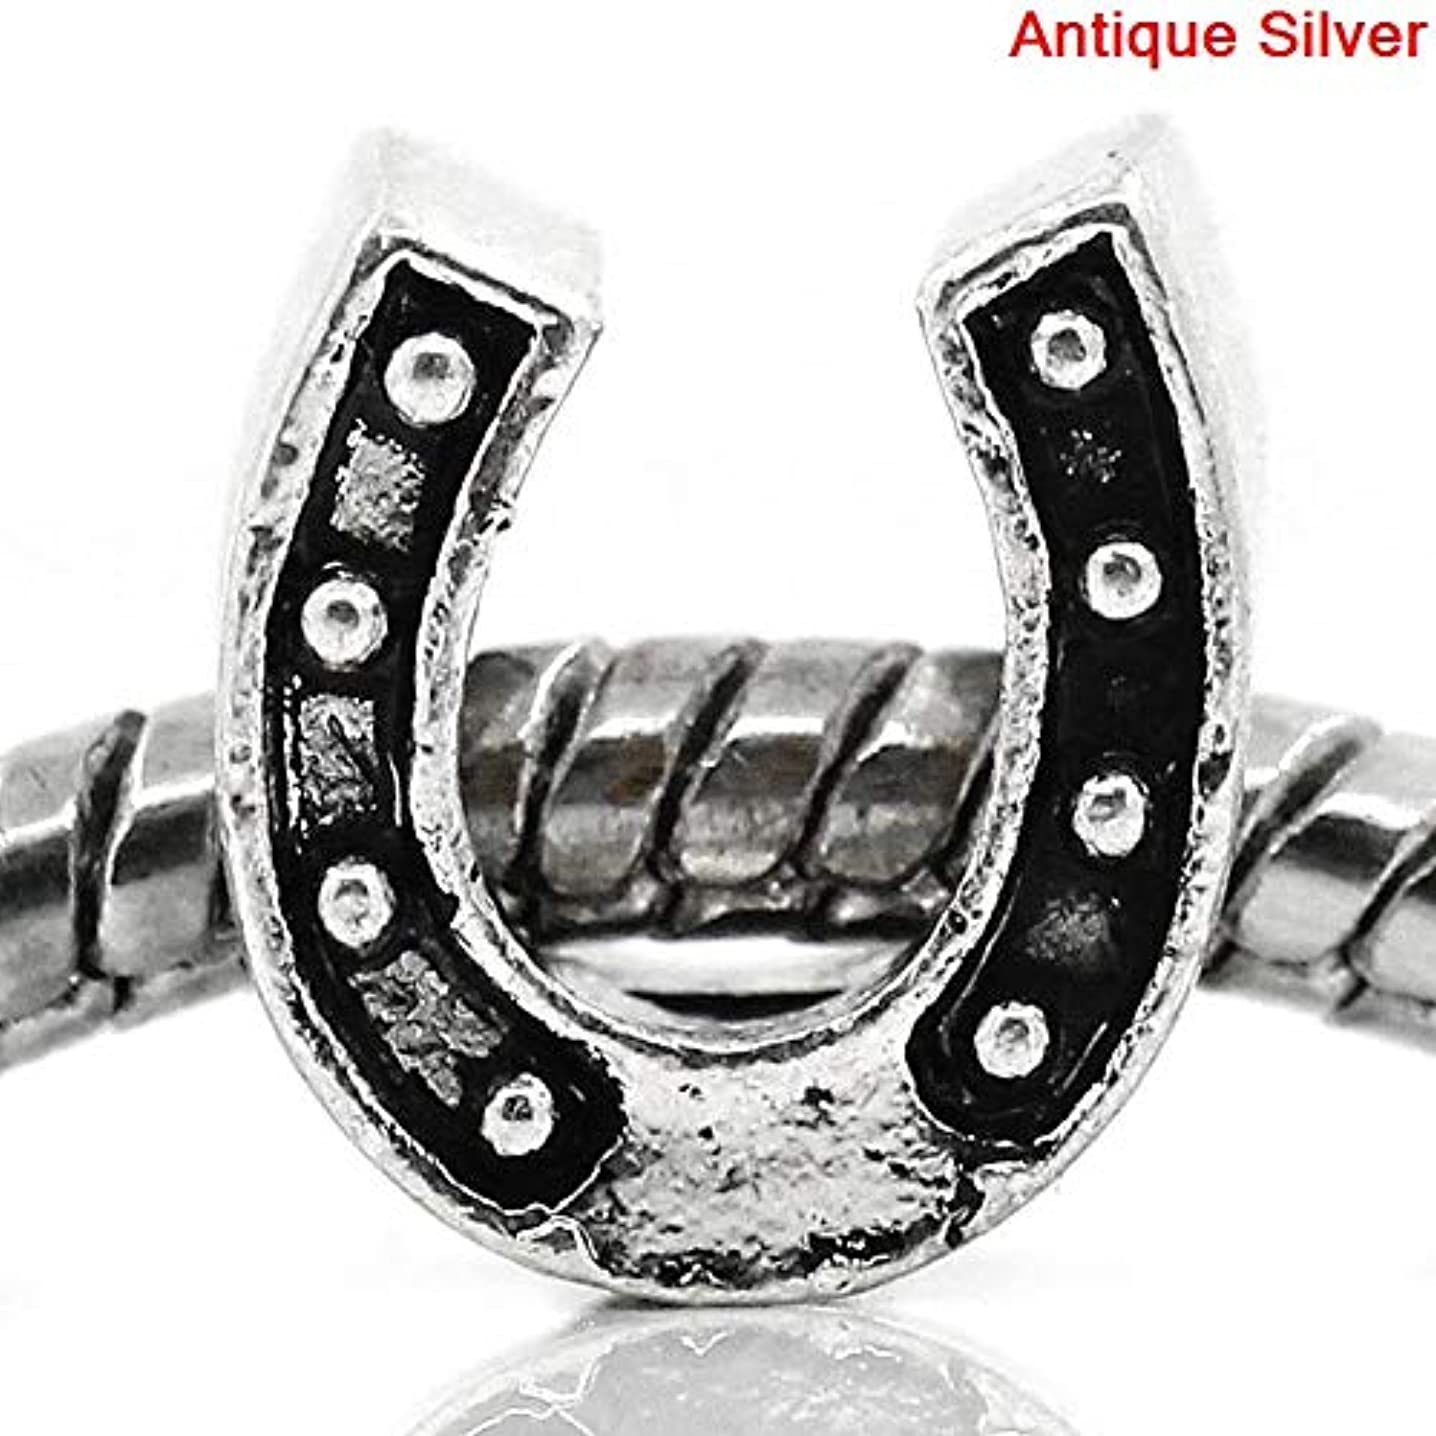 PEPPERLONELY 20pc Antiqued Silver Alloy Large Hole Beads Horseshoes Charms Pendants 11x10mm (3/8